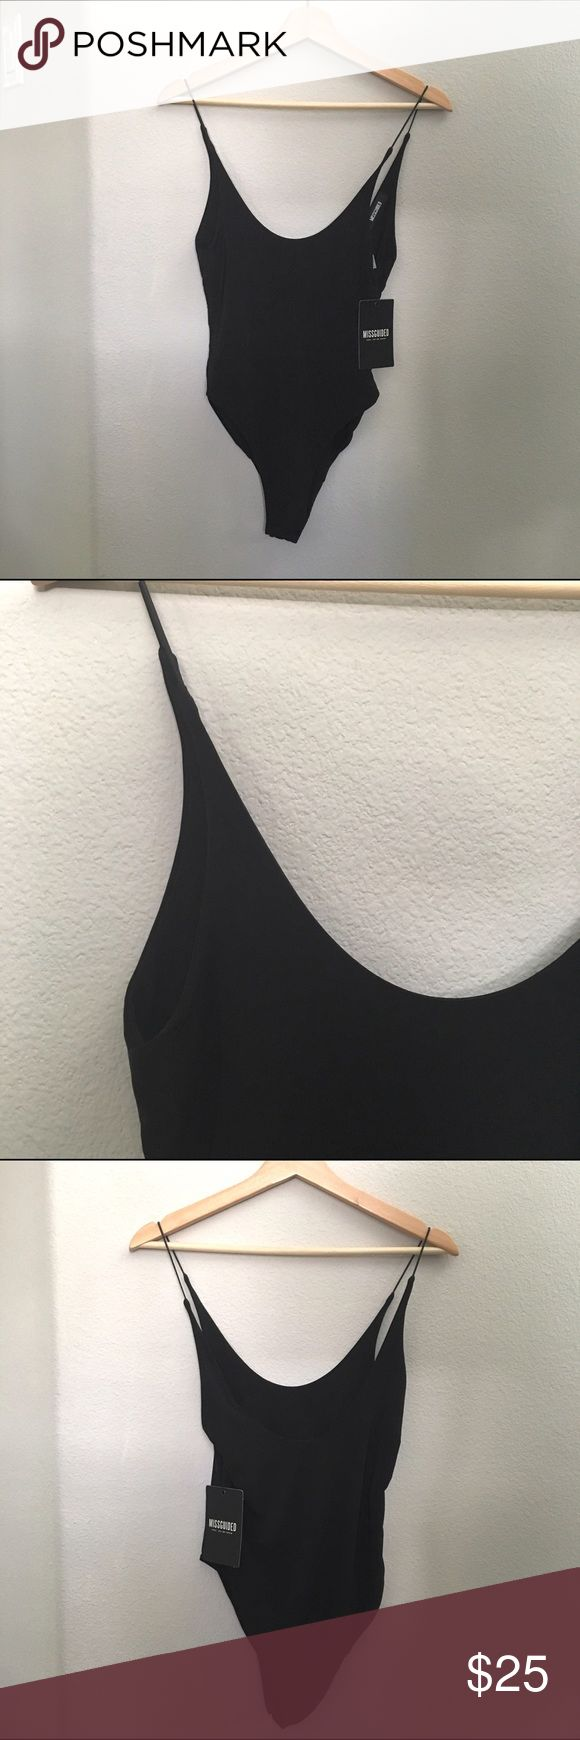 NWT Black slinky low back high leg bodysuit Brand: Missguided. New with tags. Size US 6/UK 10. Has button clasps at the bottom. Super soft and slinky. Delicate straps. NO SWAPS. #black #nwt #new #slinky #bodysuit #delicate #straps #missguided   Fun fact: I discount bundles! :) Missguided Tops Tank Tops